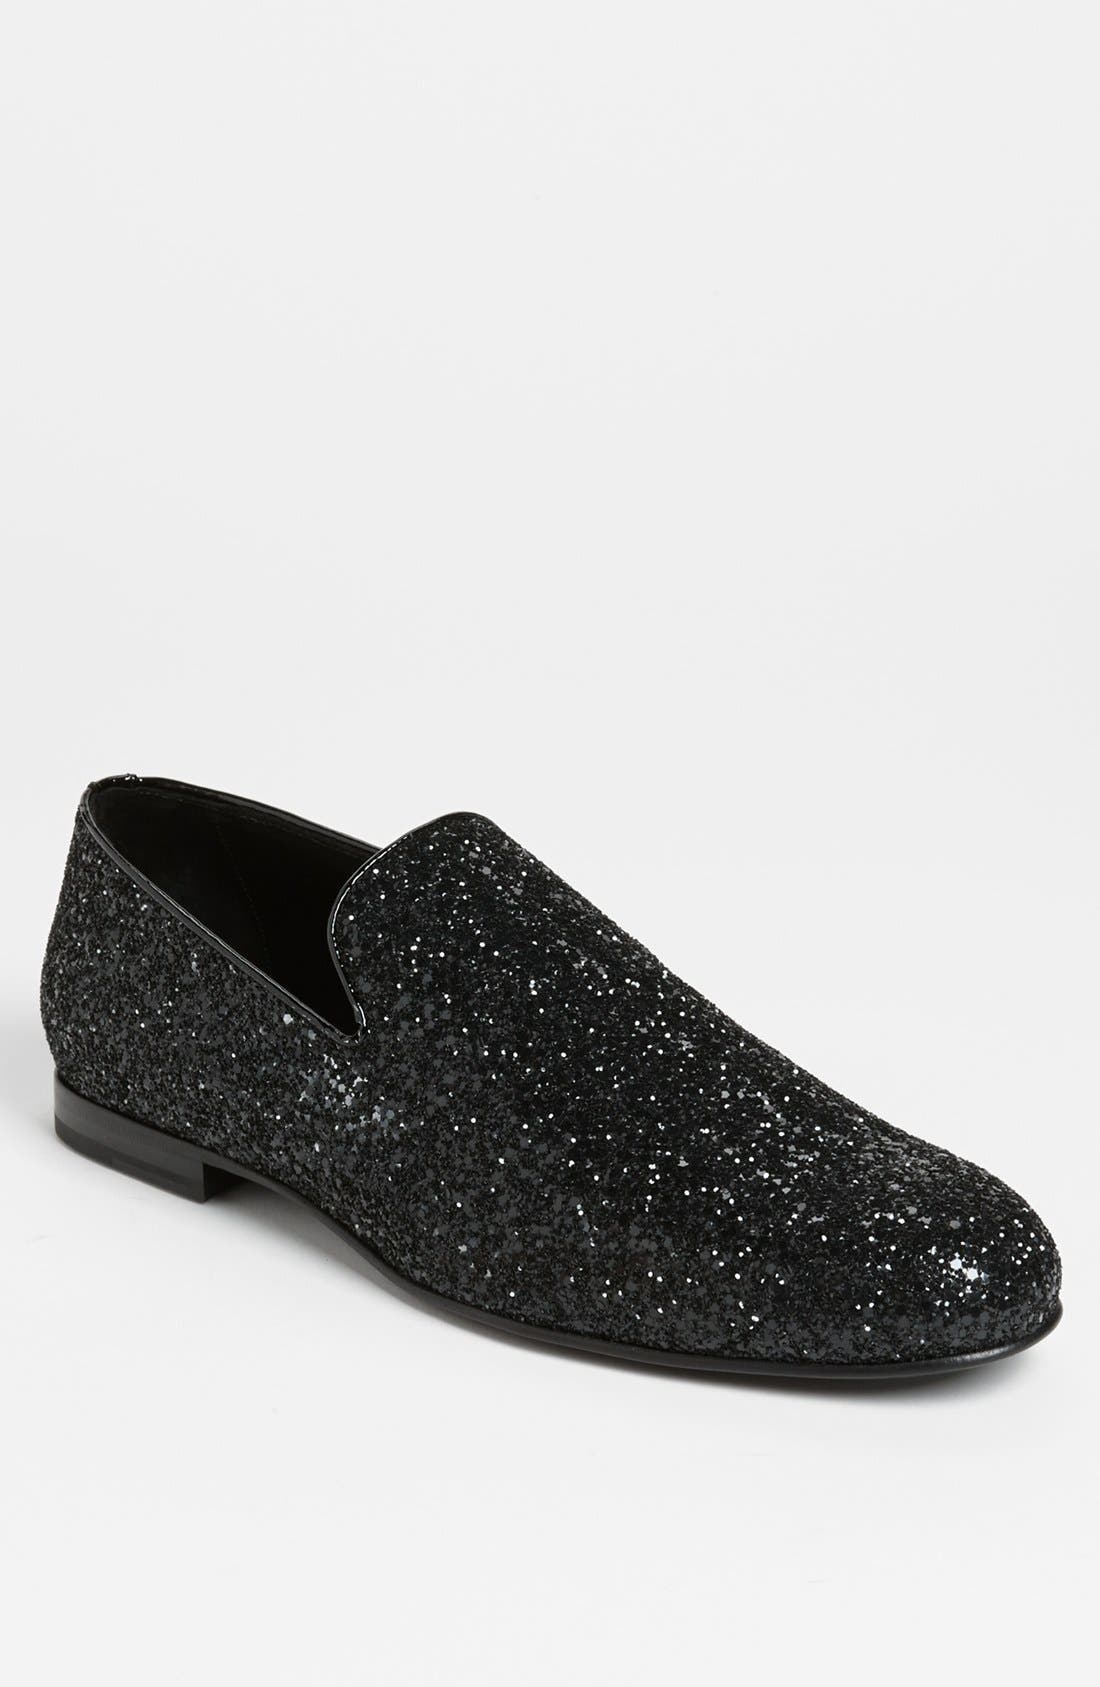 Jimmy Choo 'Sloane' Loafer